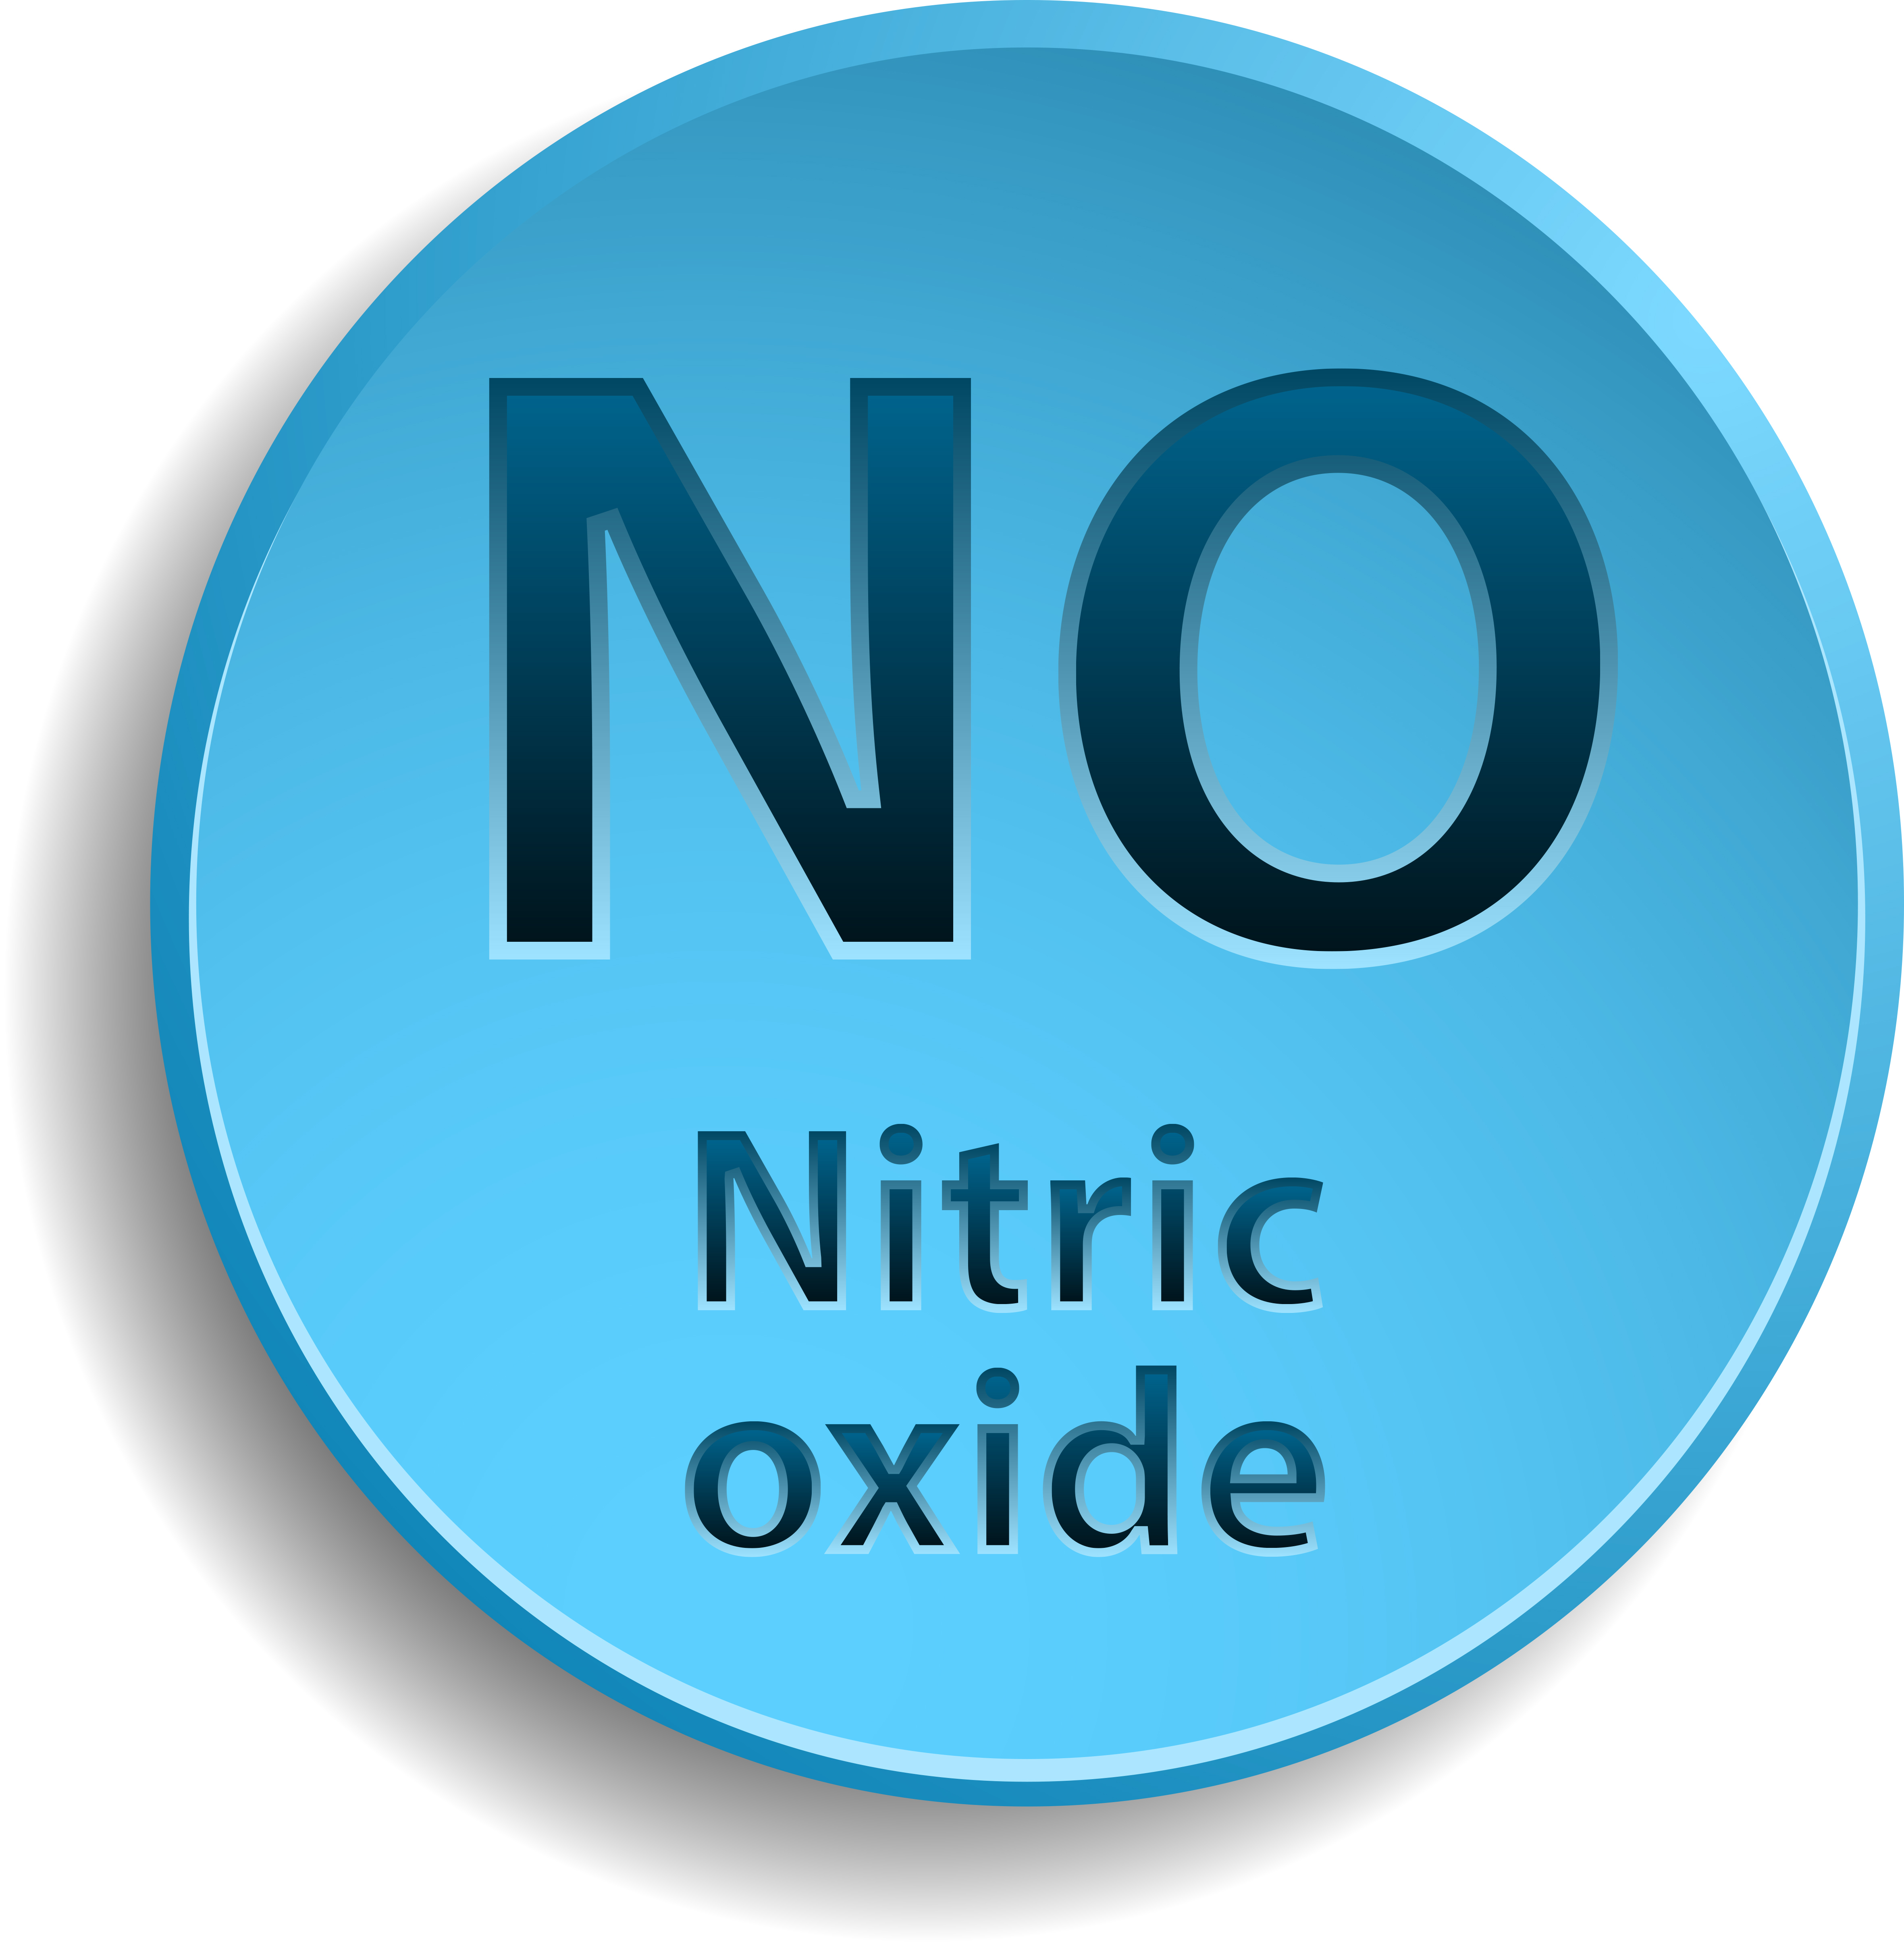 No Clear Benefits from Inhaled Nitric Oxide (iNO) for Pulmonary Hypertension in Preterm Babies